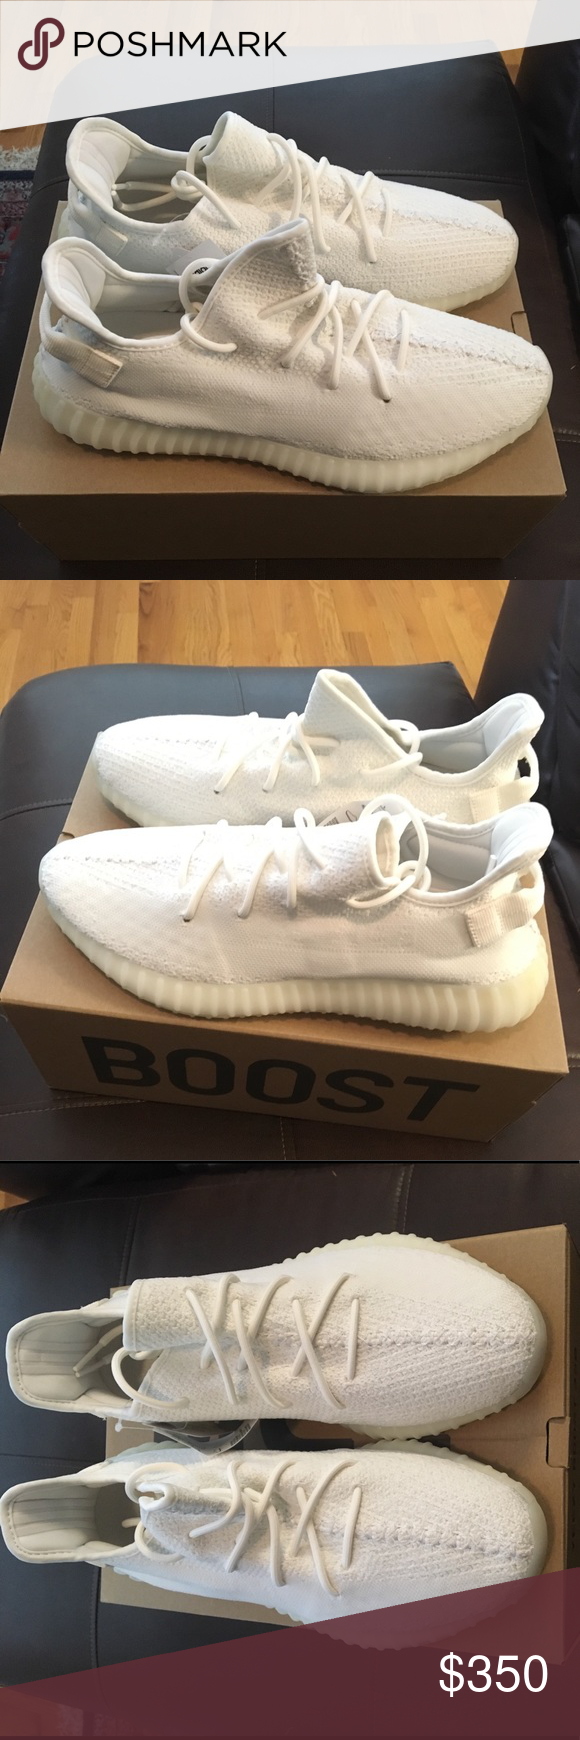 the best attitude 412c7 8906d Authentic Adidas Yeezy Boost 350 V2 Triple White New with ...